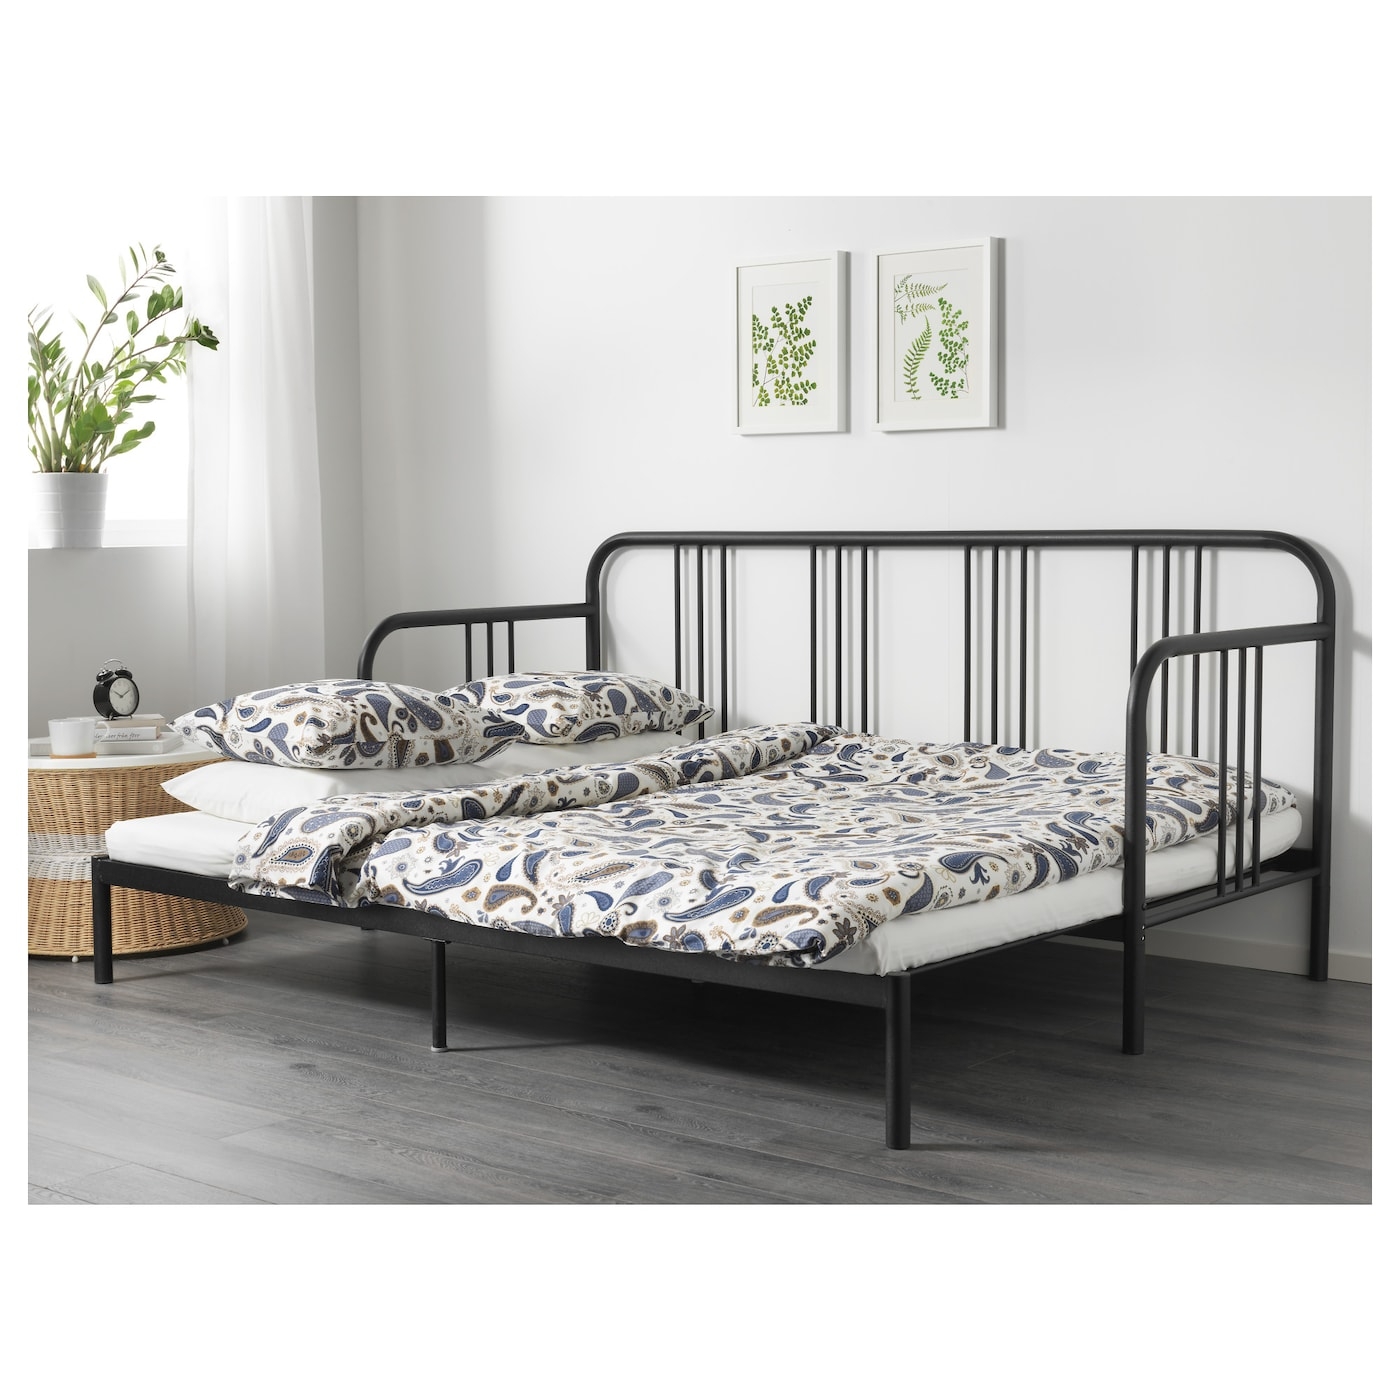 Hemnes day bed frame with 3 drawers grey 80x200 cm ikea - Ikea Fyresdal Day Bed Frame